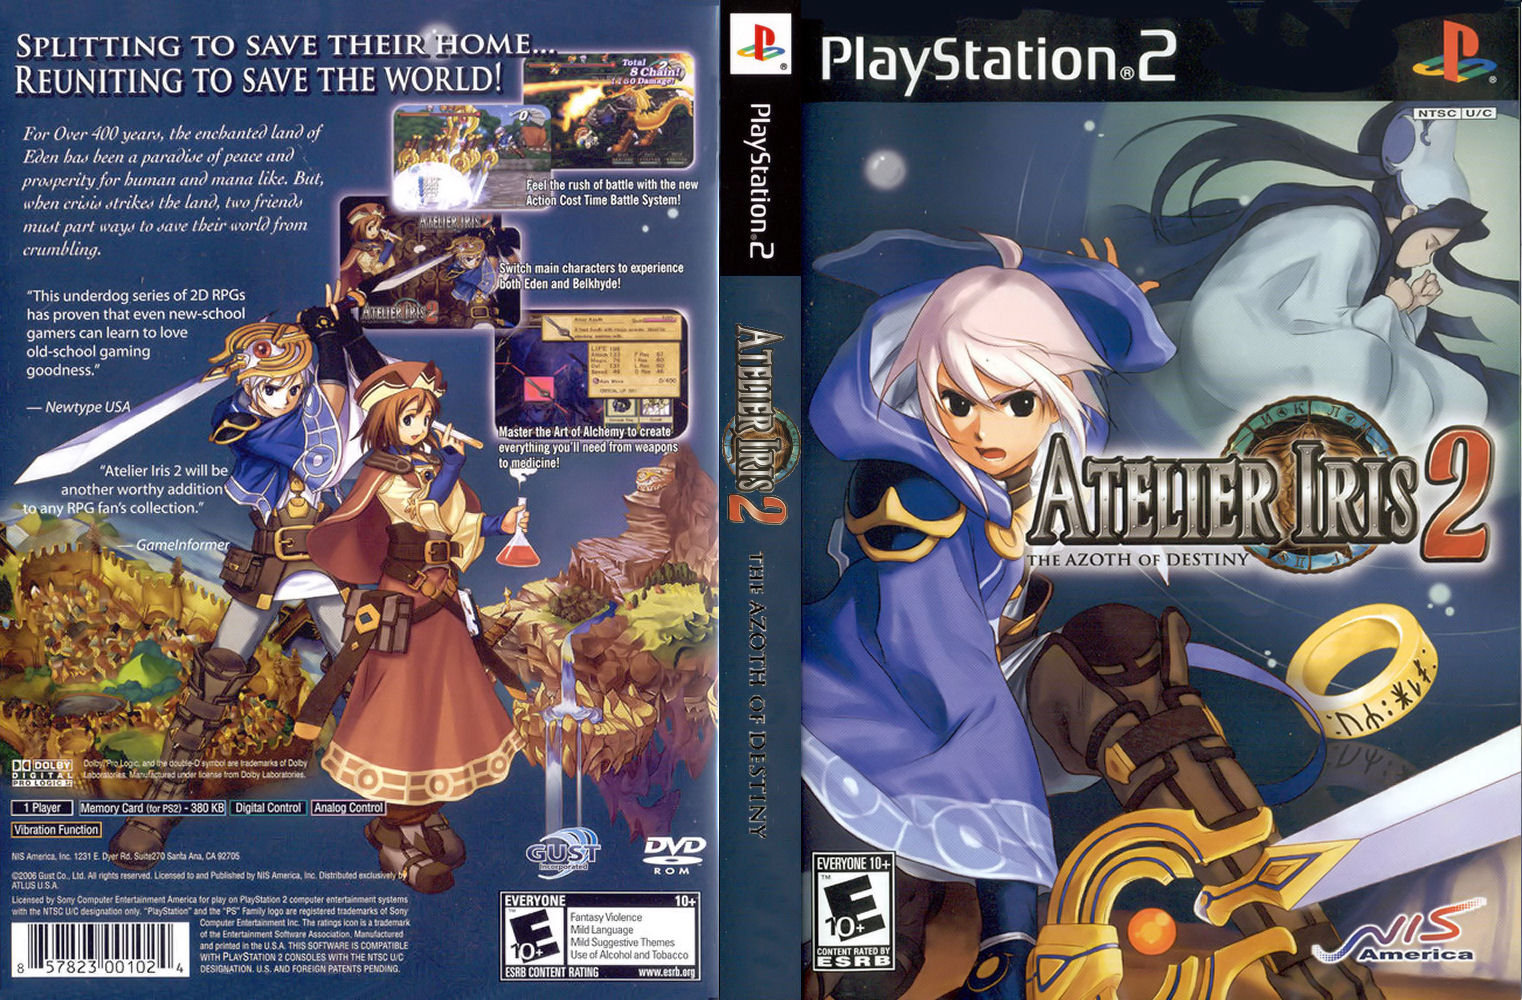 Download - Atelier Iris 2 - The Azoth of Destiny - PS2 - ISO